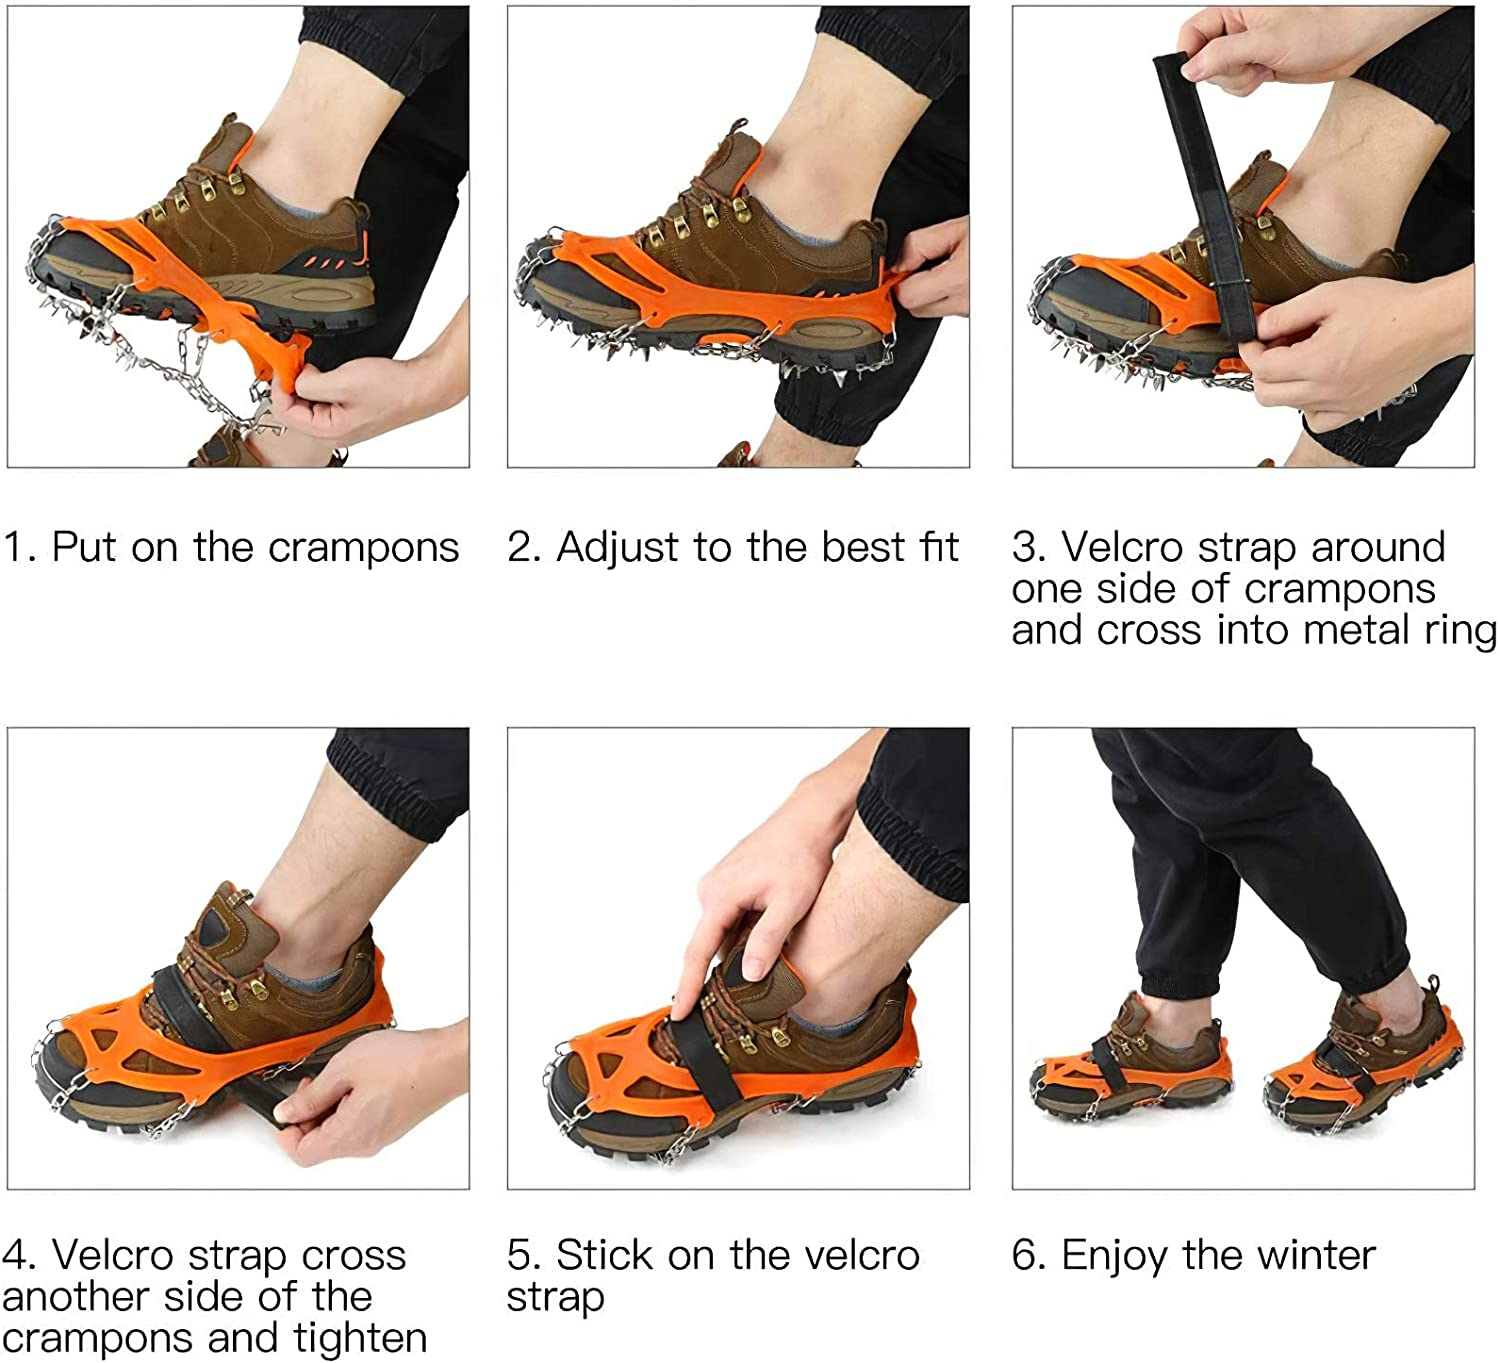 Traction Cleats Crampons for Footwear with 19 Stainless Steel Spikes for Walking Jogging Hiking on Snow and Ice IPSXP Ice Snow Grips M//L//XL Climbing